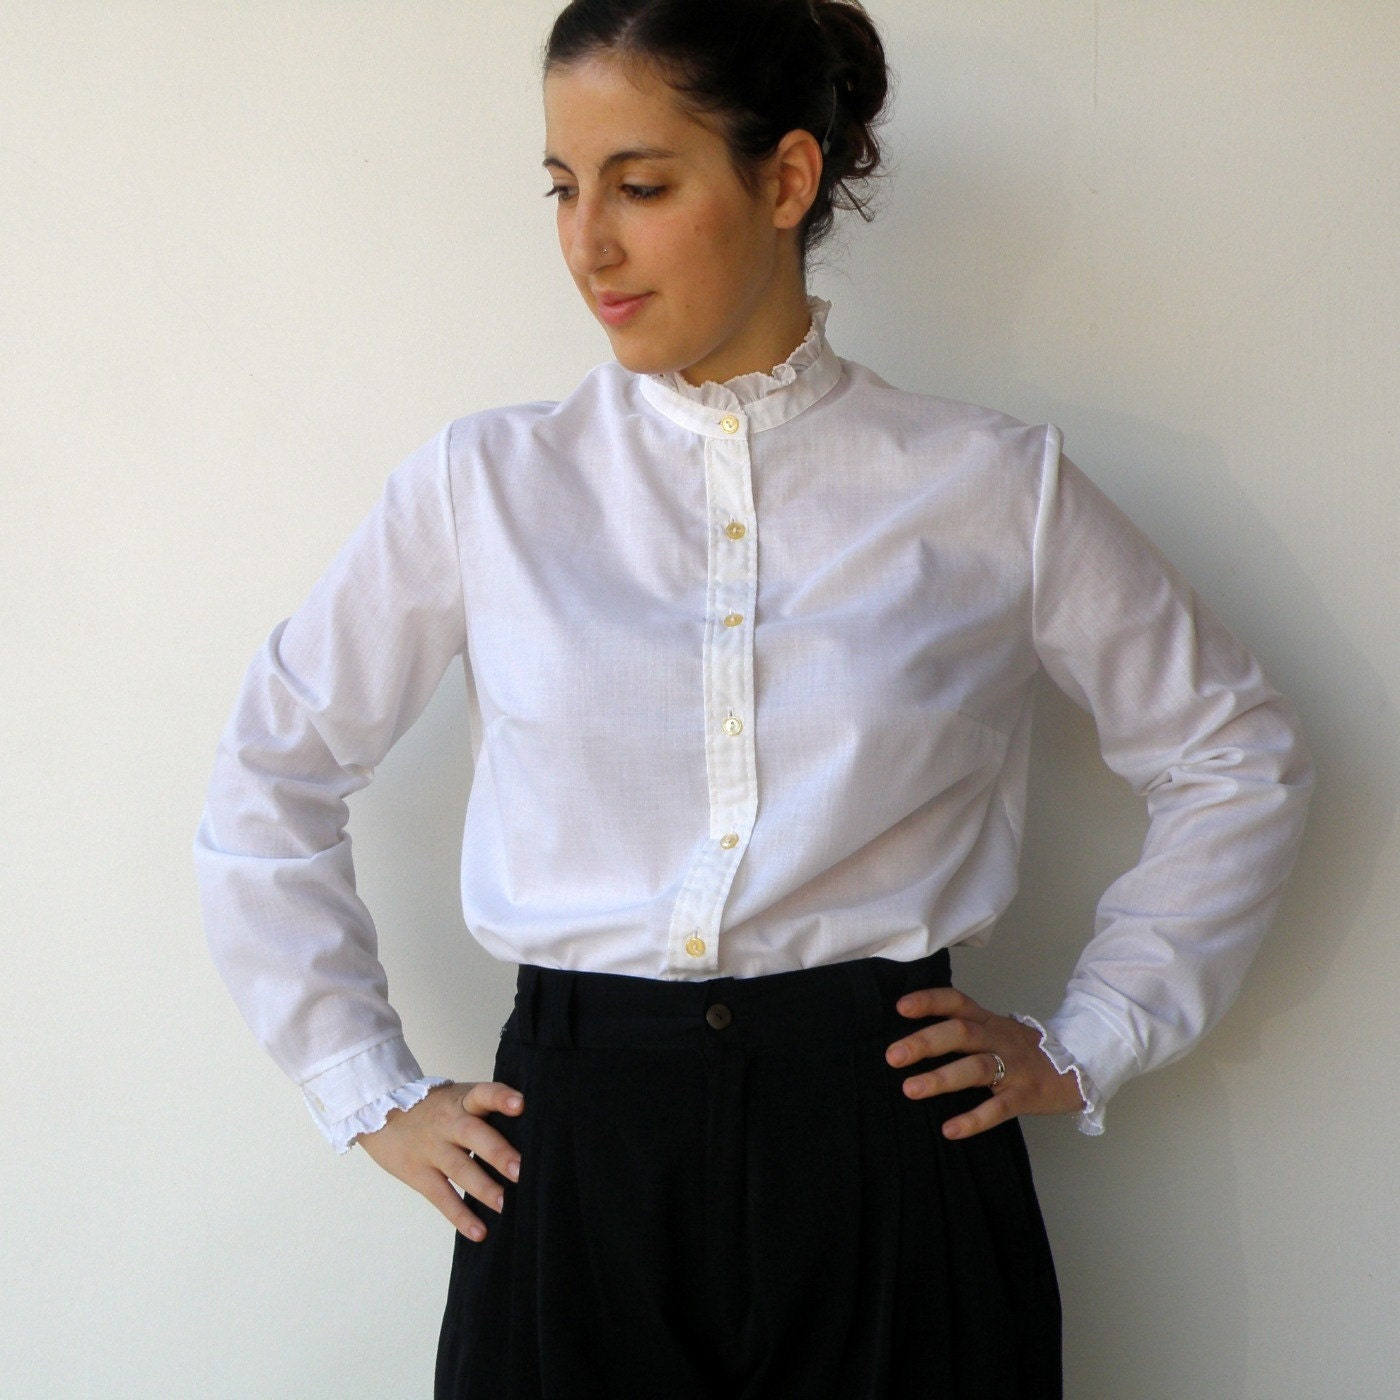 Womens White Victorian Blouse 71